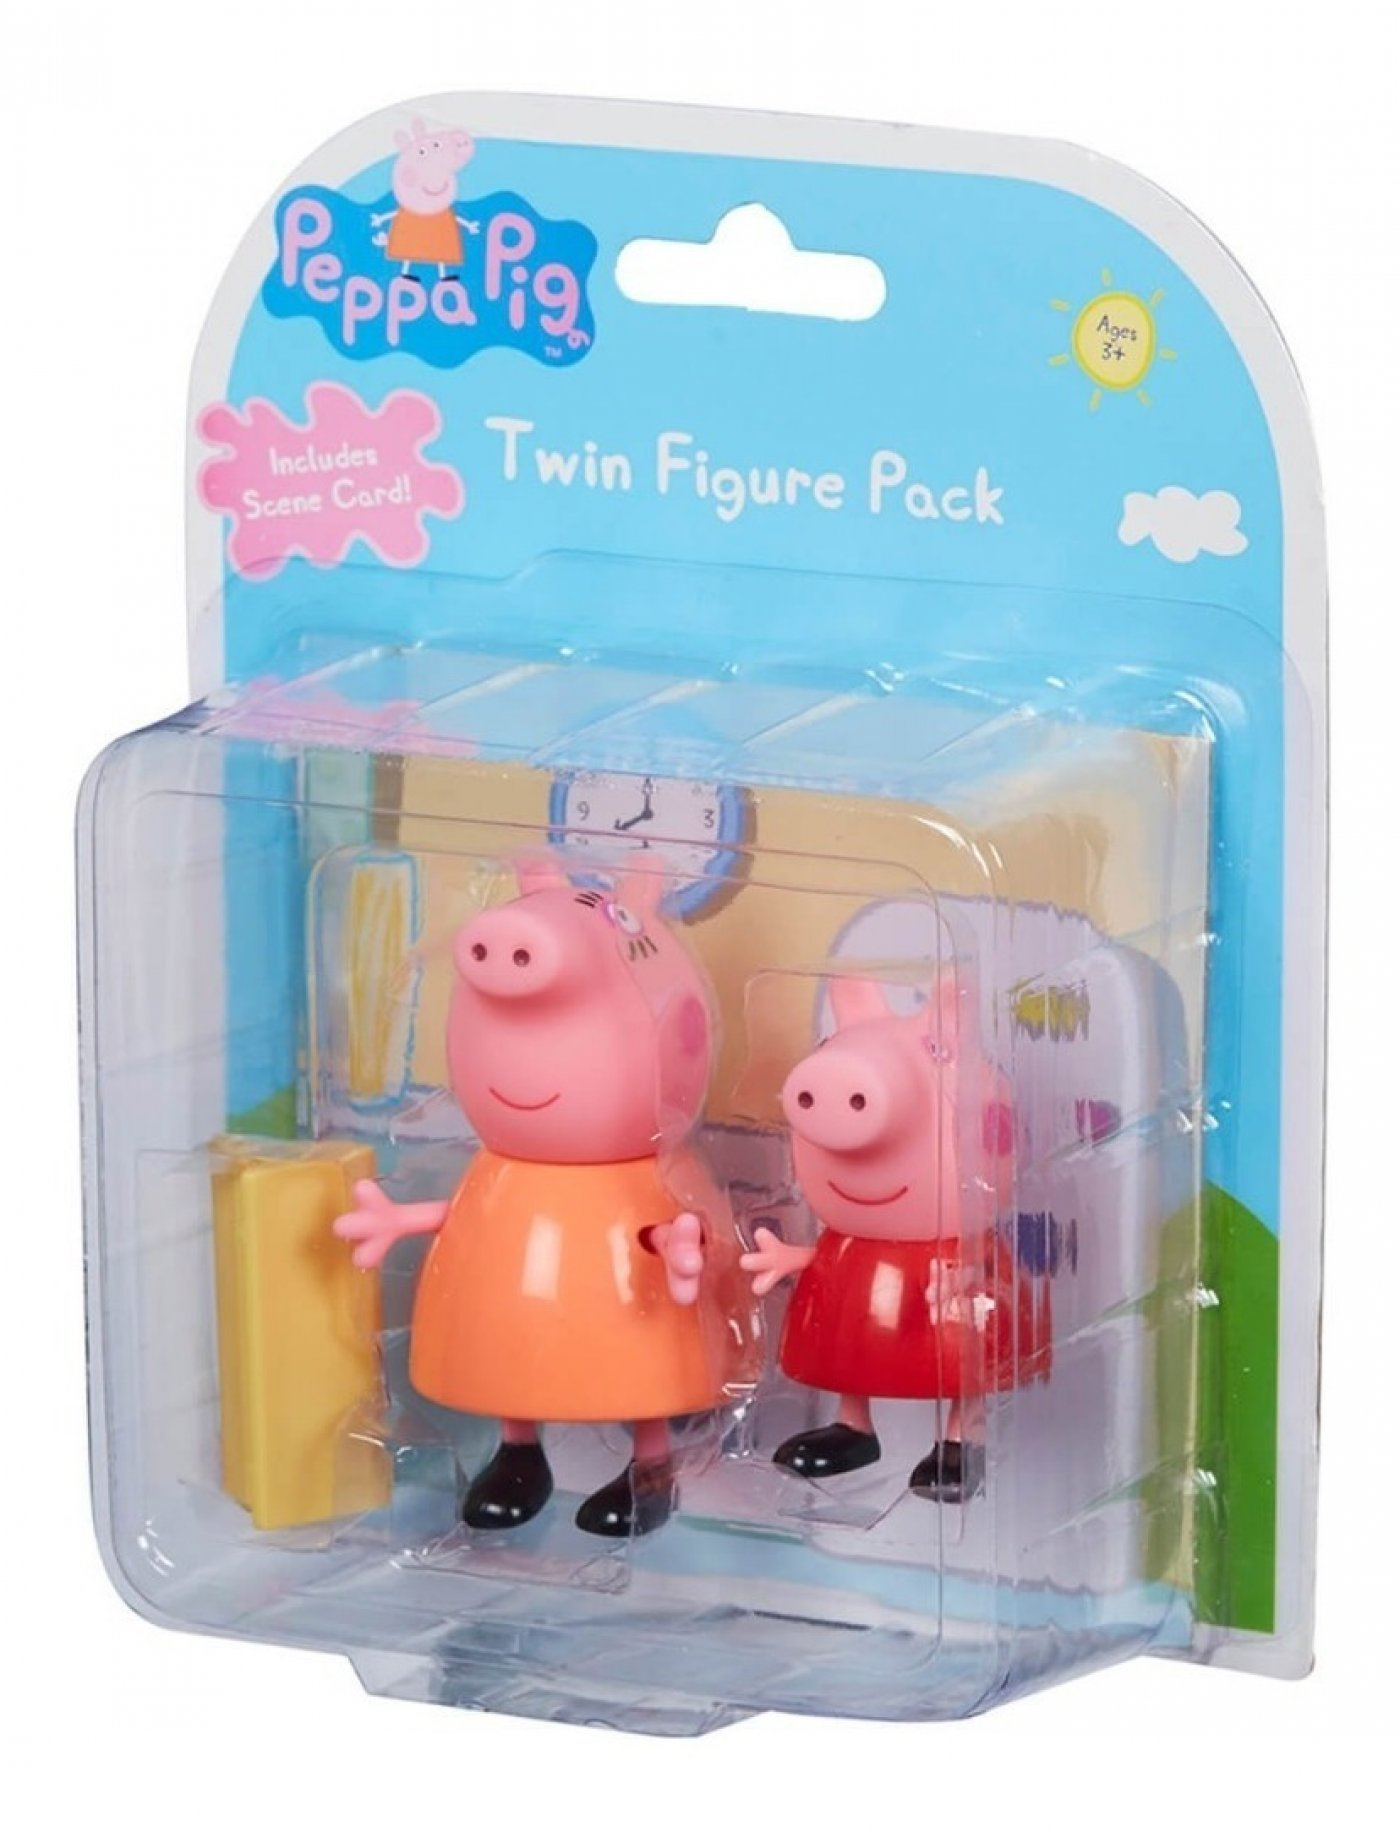 Peppa Pig Y Mama Pig Twin Figure Pack